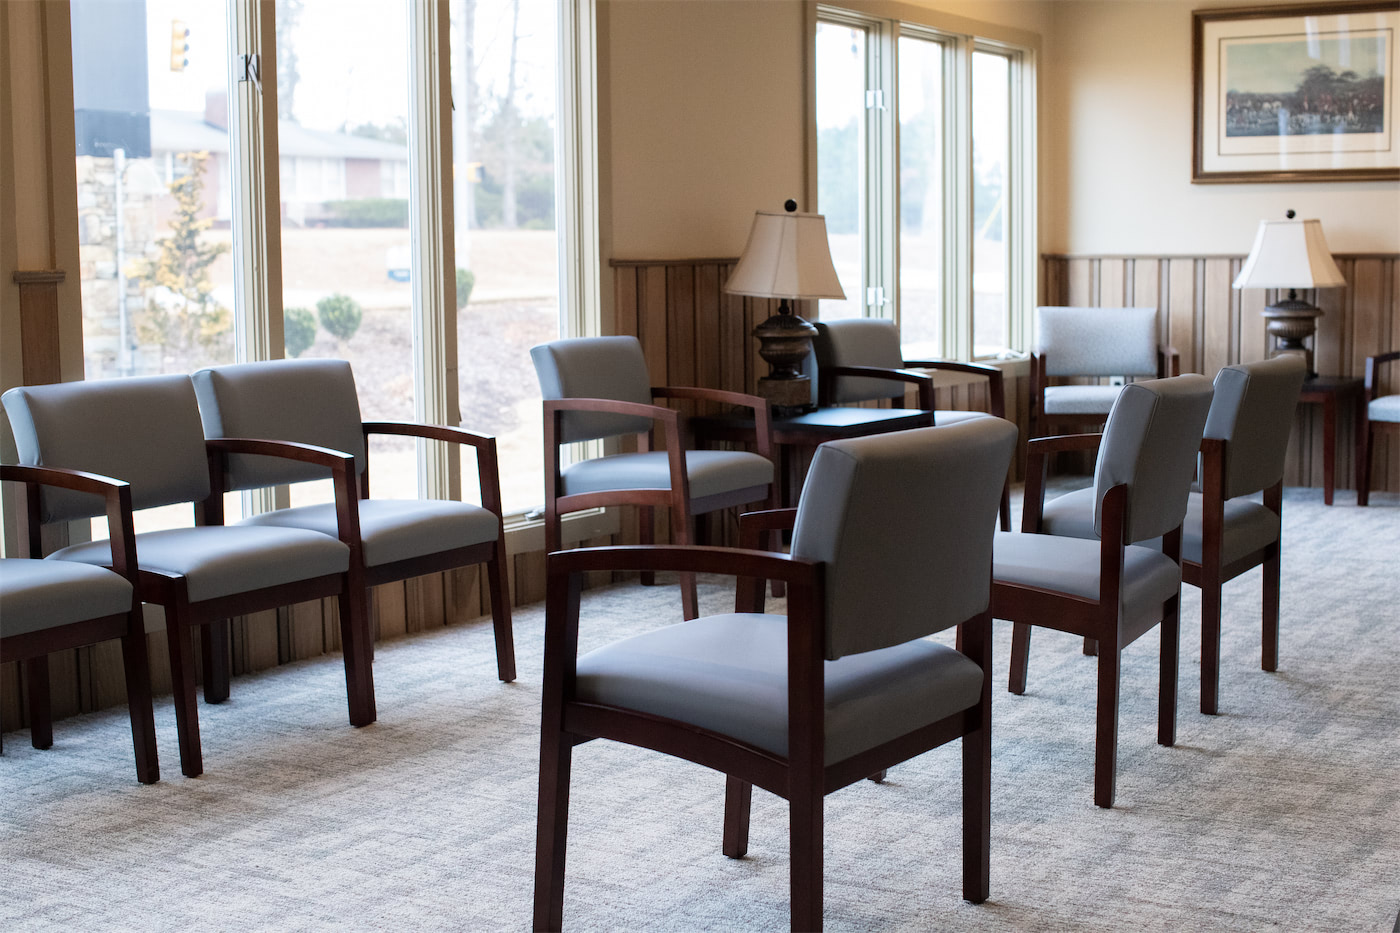 Chairs in the lobby area